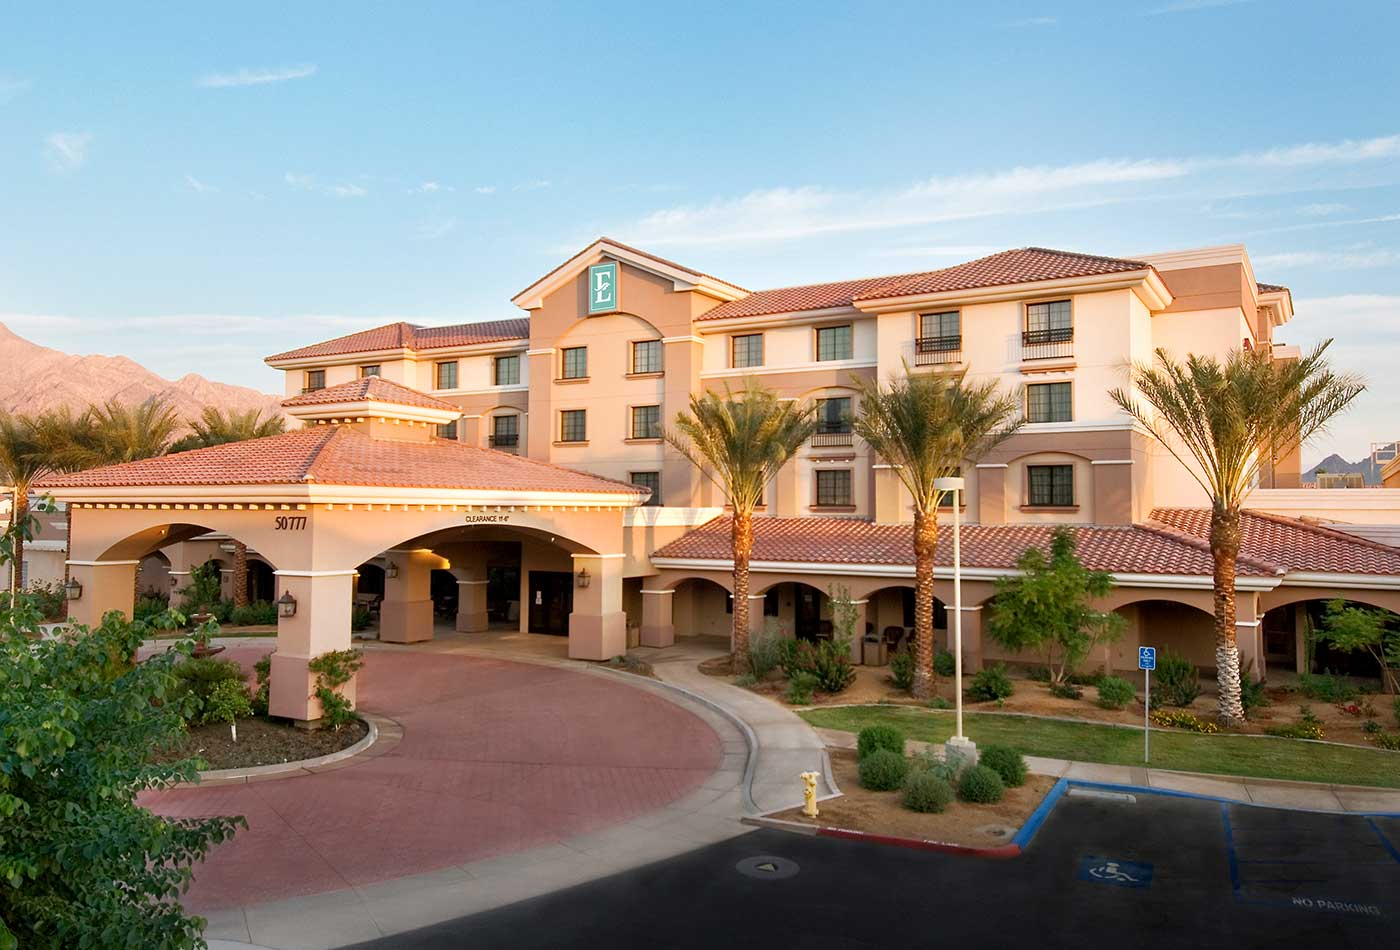 Embassy Suites by Hilton La Quinta